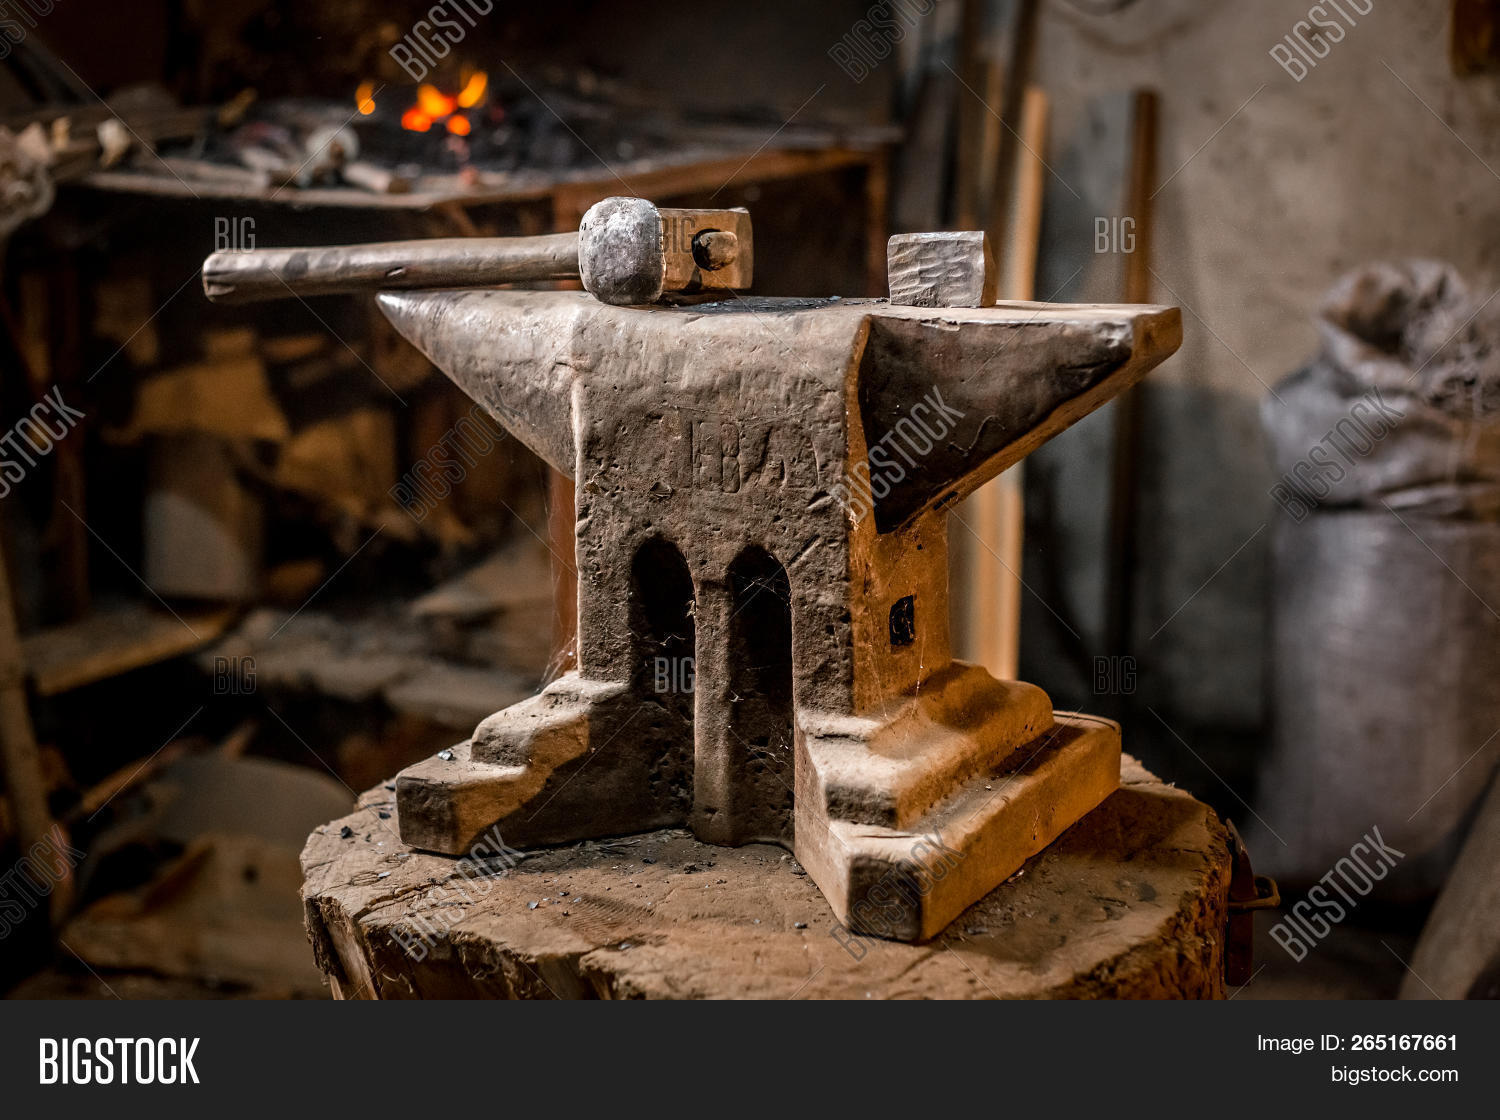 Old Blacksmiths Hammer Image & Photo (Free Trial) | Bigstock